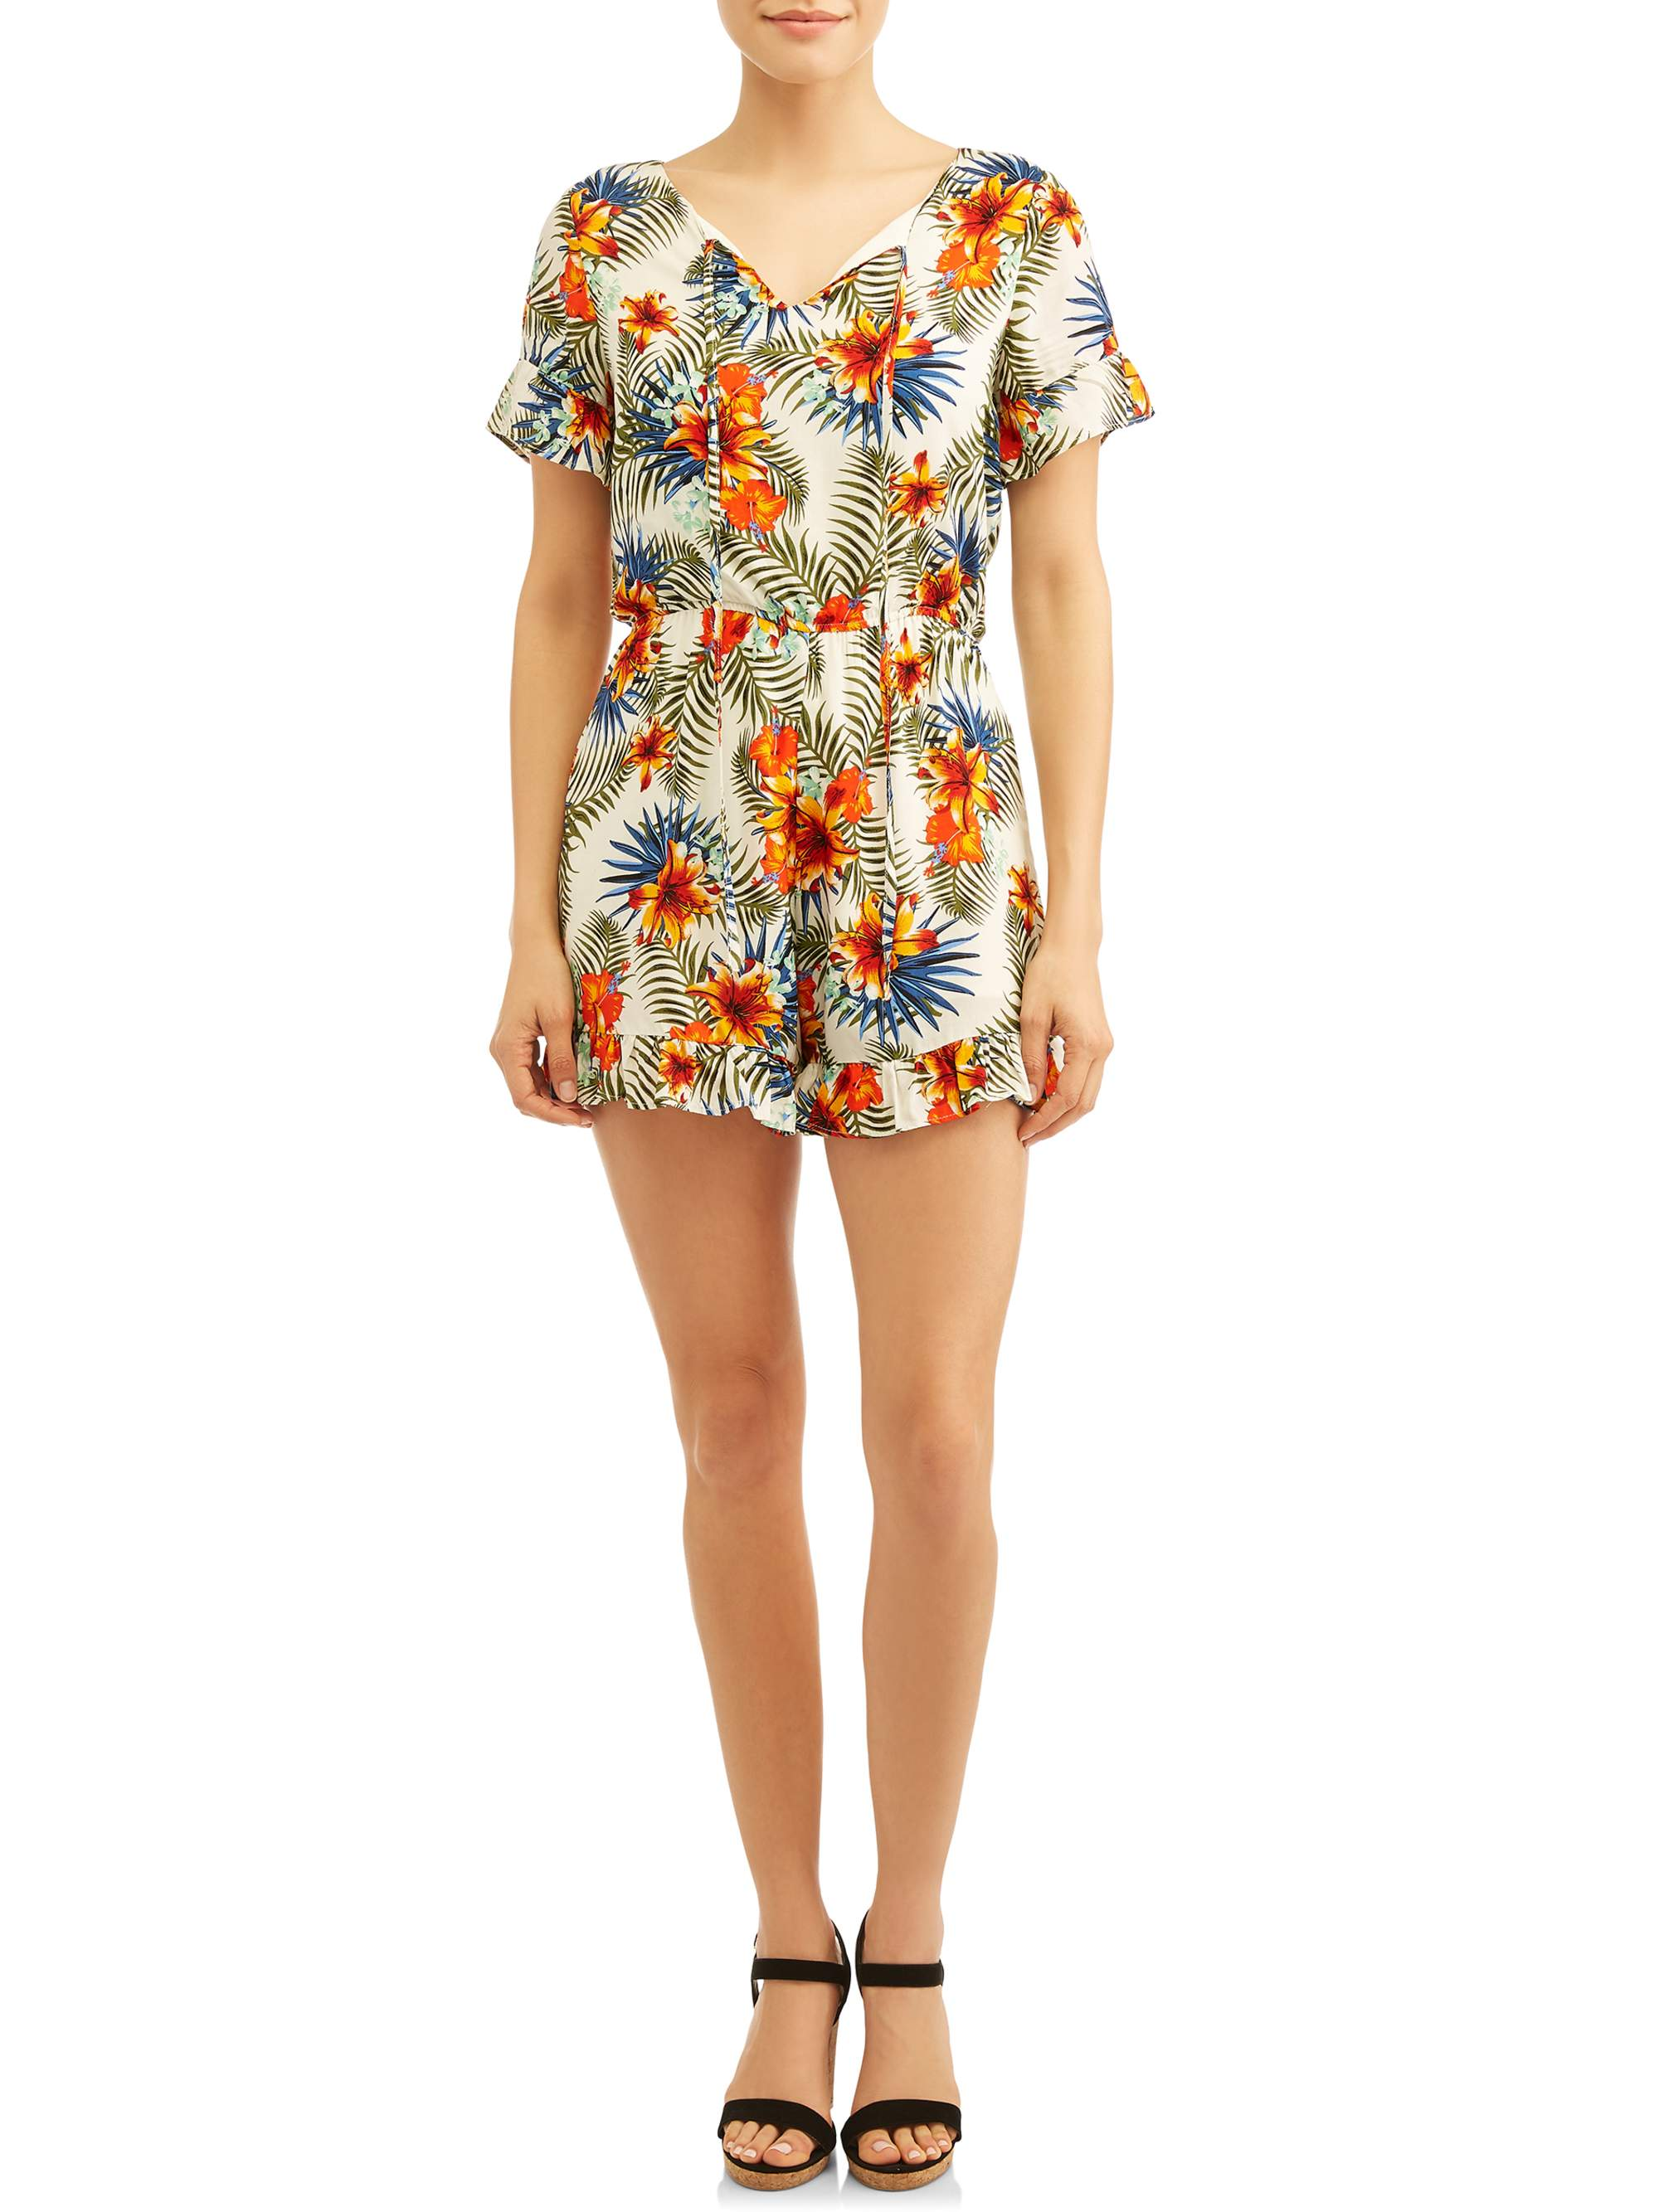 Women's Printed Romper With Ruffles